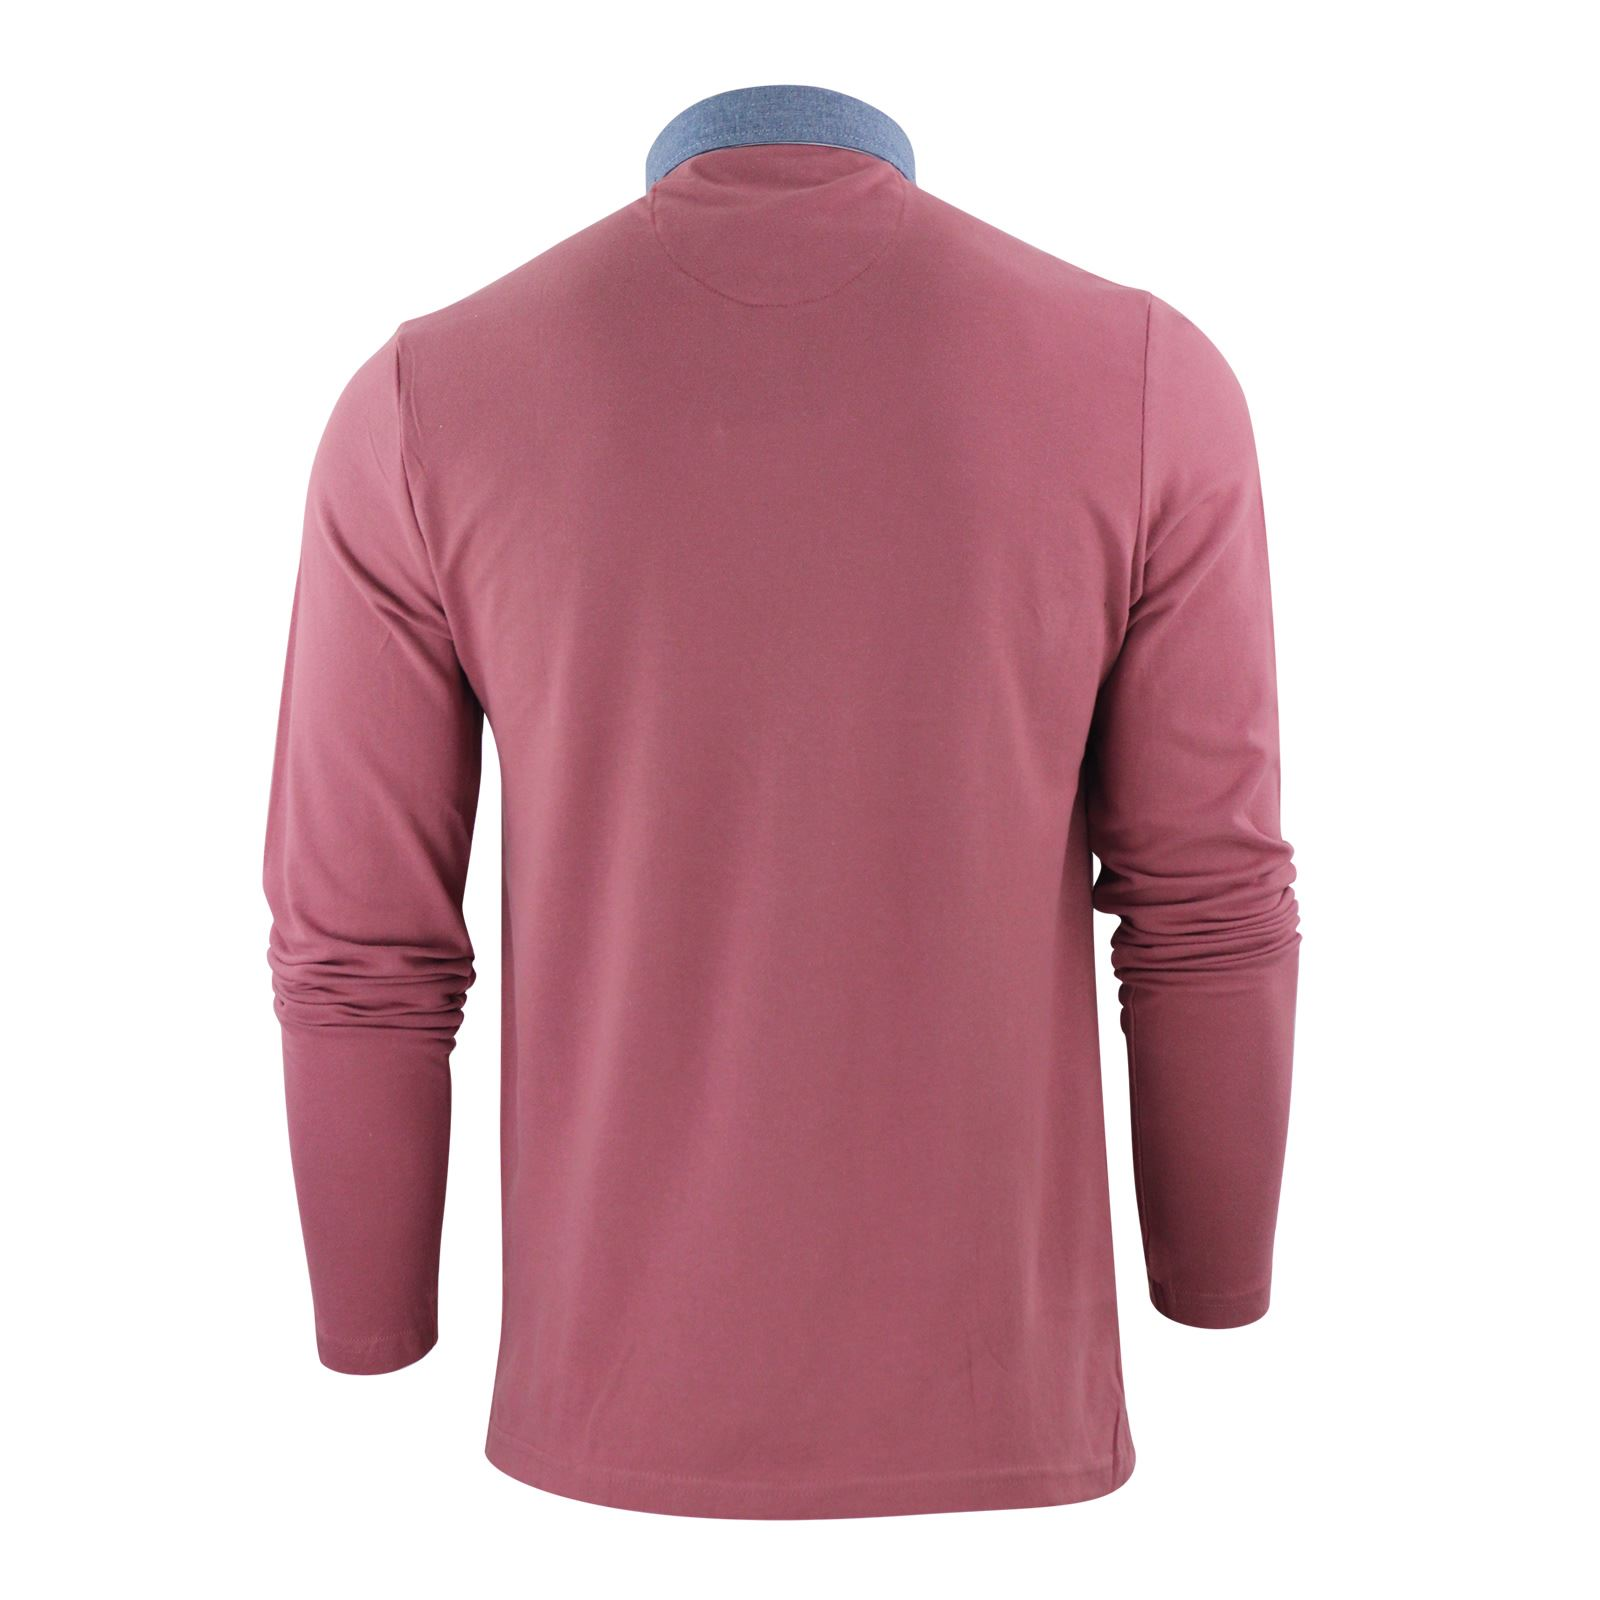 Mens-Polo-T-Shirt-Brave-Soul-Hera-Cotton-Long-Sleeve-Casual-Top thumbnail 15